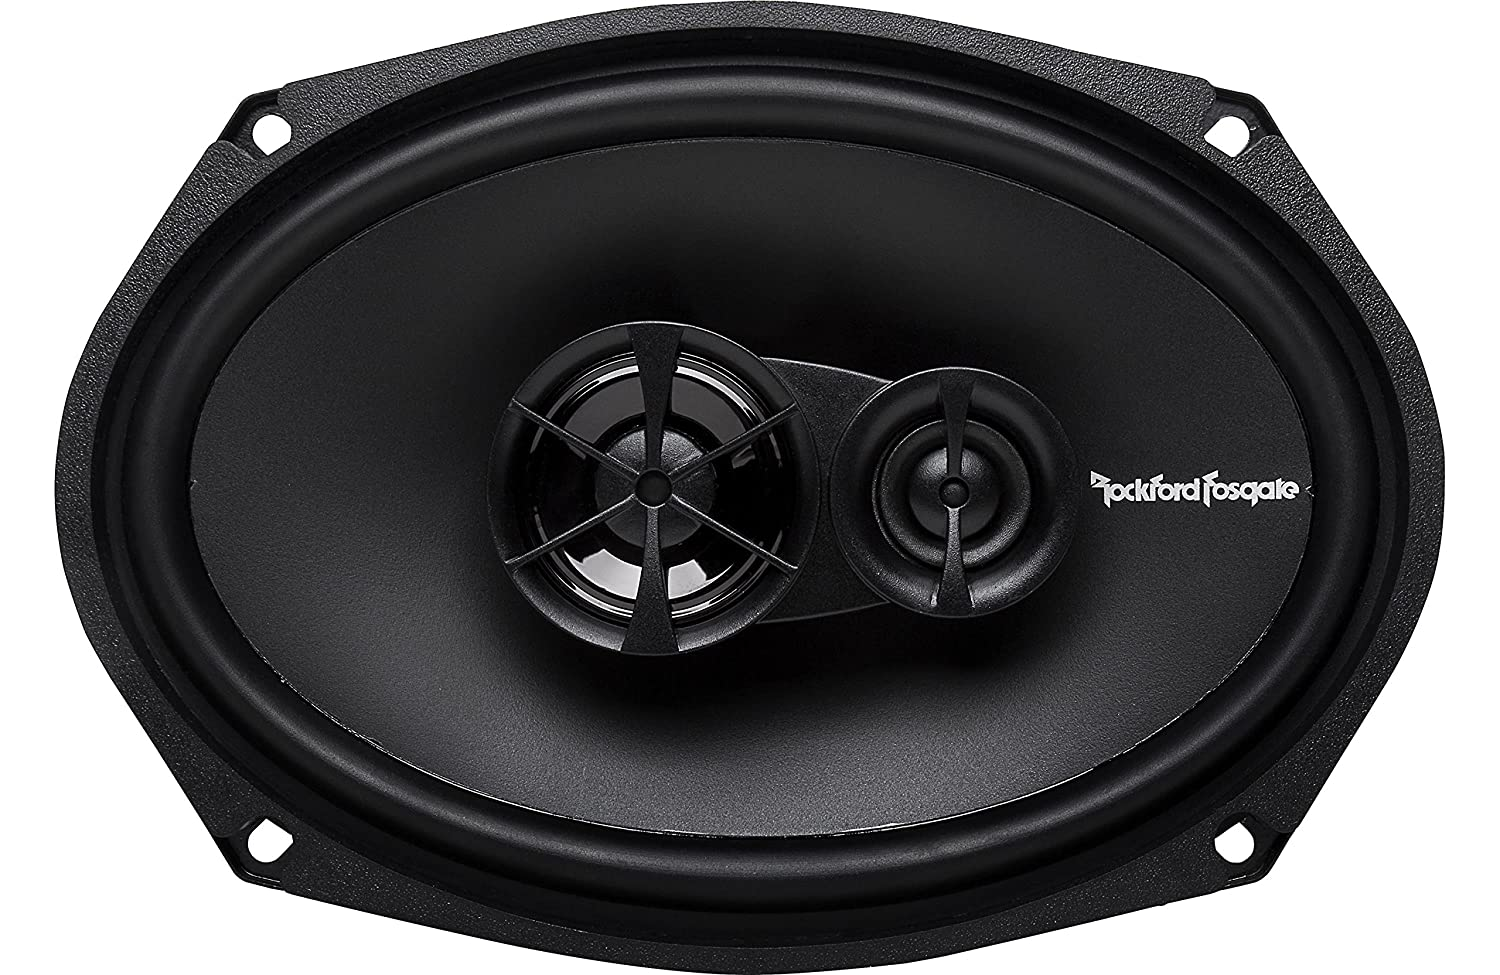 Car Speaker And Amp Combo Of 2x Rockford Fosgate R165x3 Loudspeaker Protection With Soft Start Prime 65 Inch 180 Watt 3 Way Full Range Coaxial Bundle R169x3